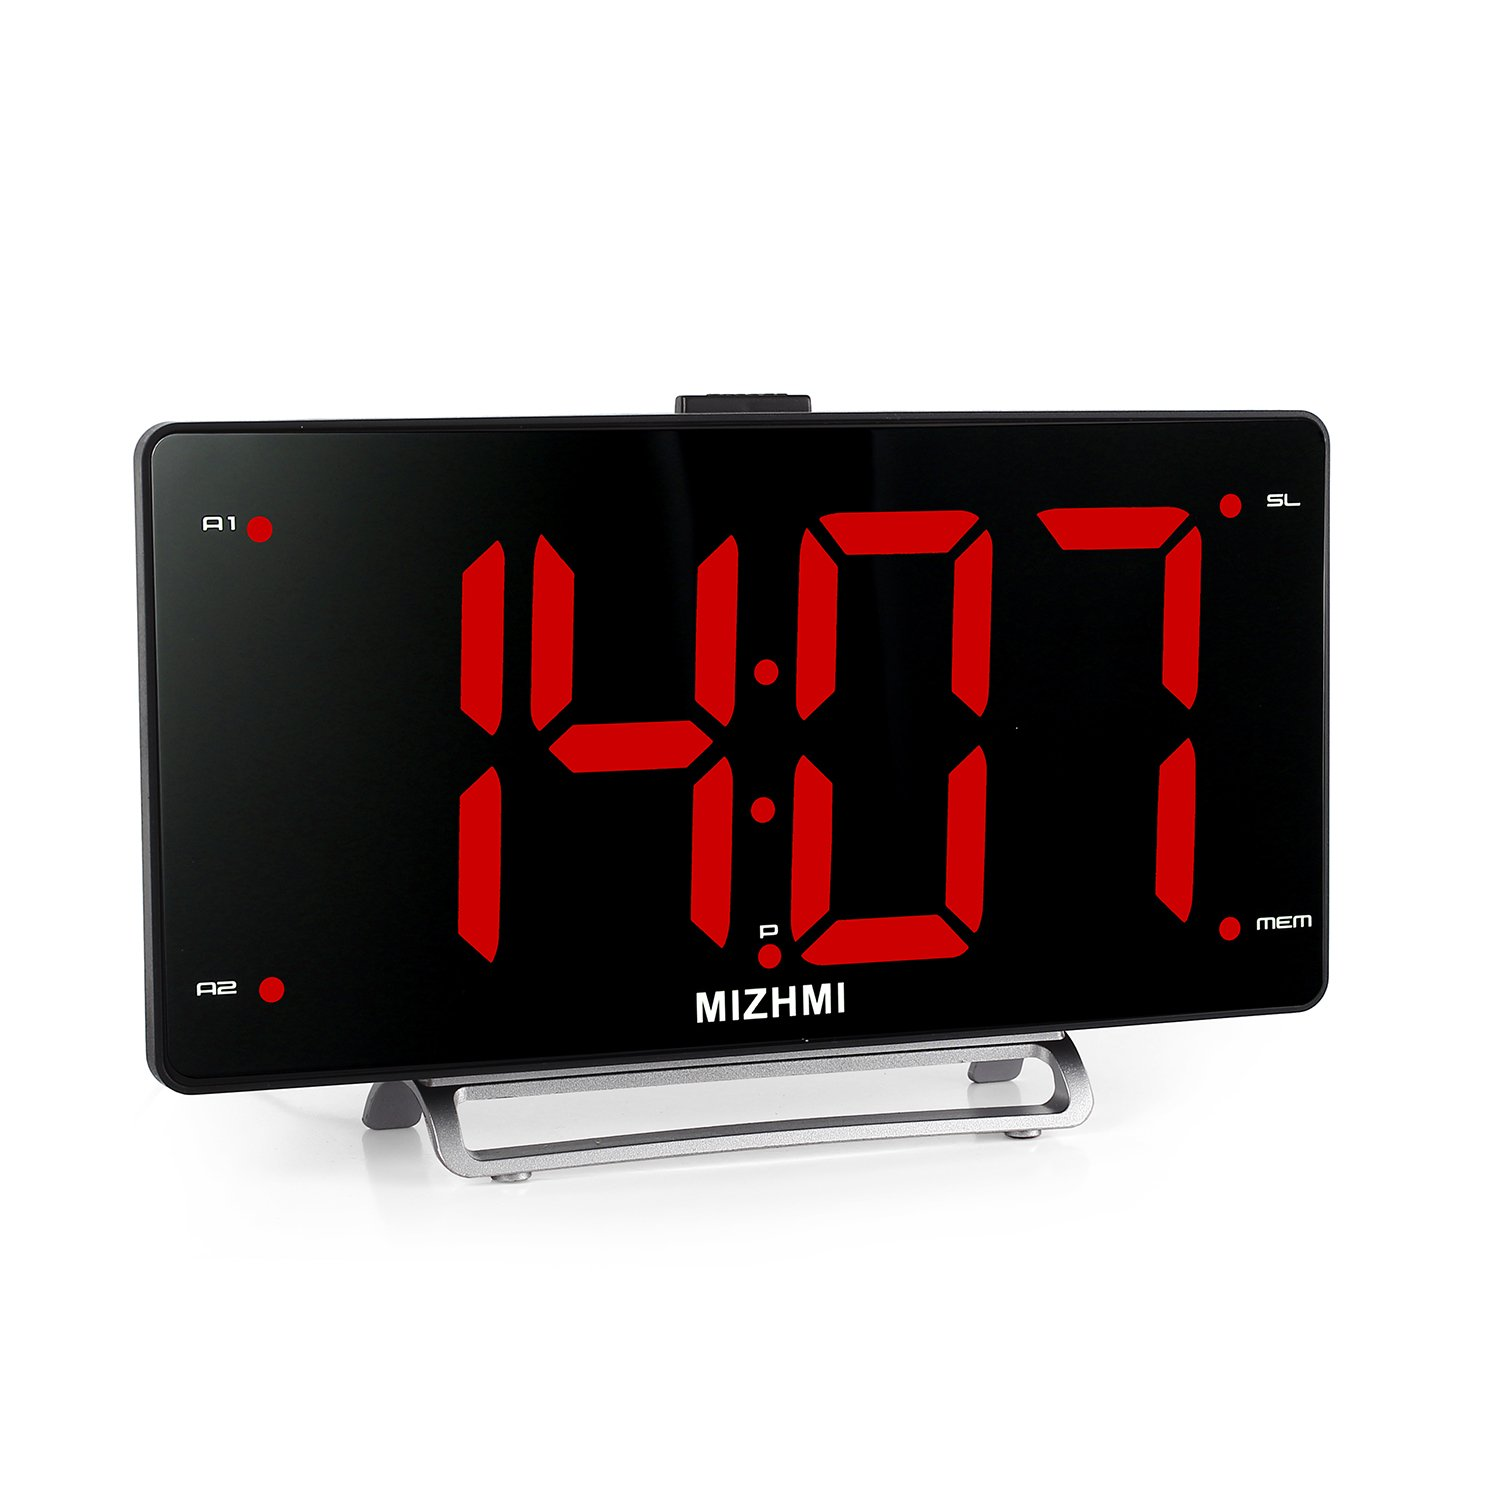 MIZHMI Alarm Clock with FM Radio, Dual Alarm, Nap/Sleep Timer, 3'' LED Dimmer 12/24 Hour Display with Dimming,Snooze Function, USB Charging